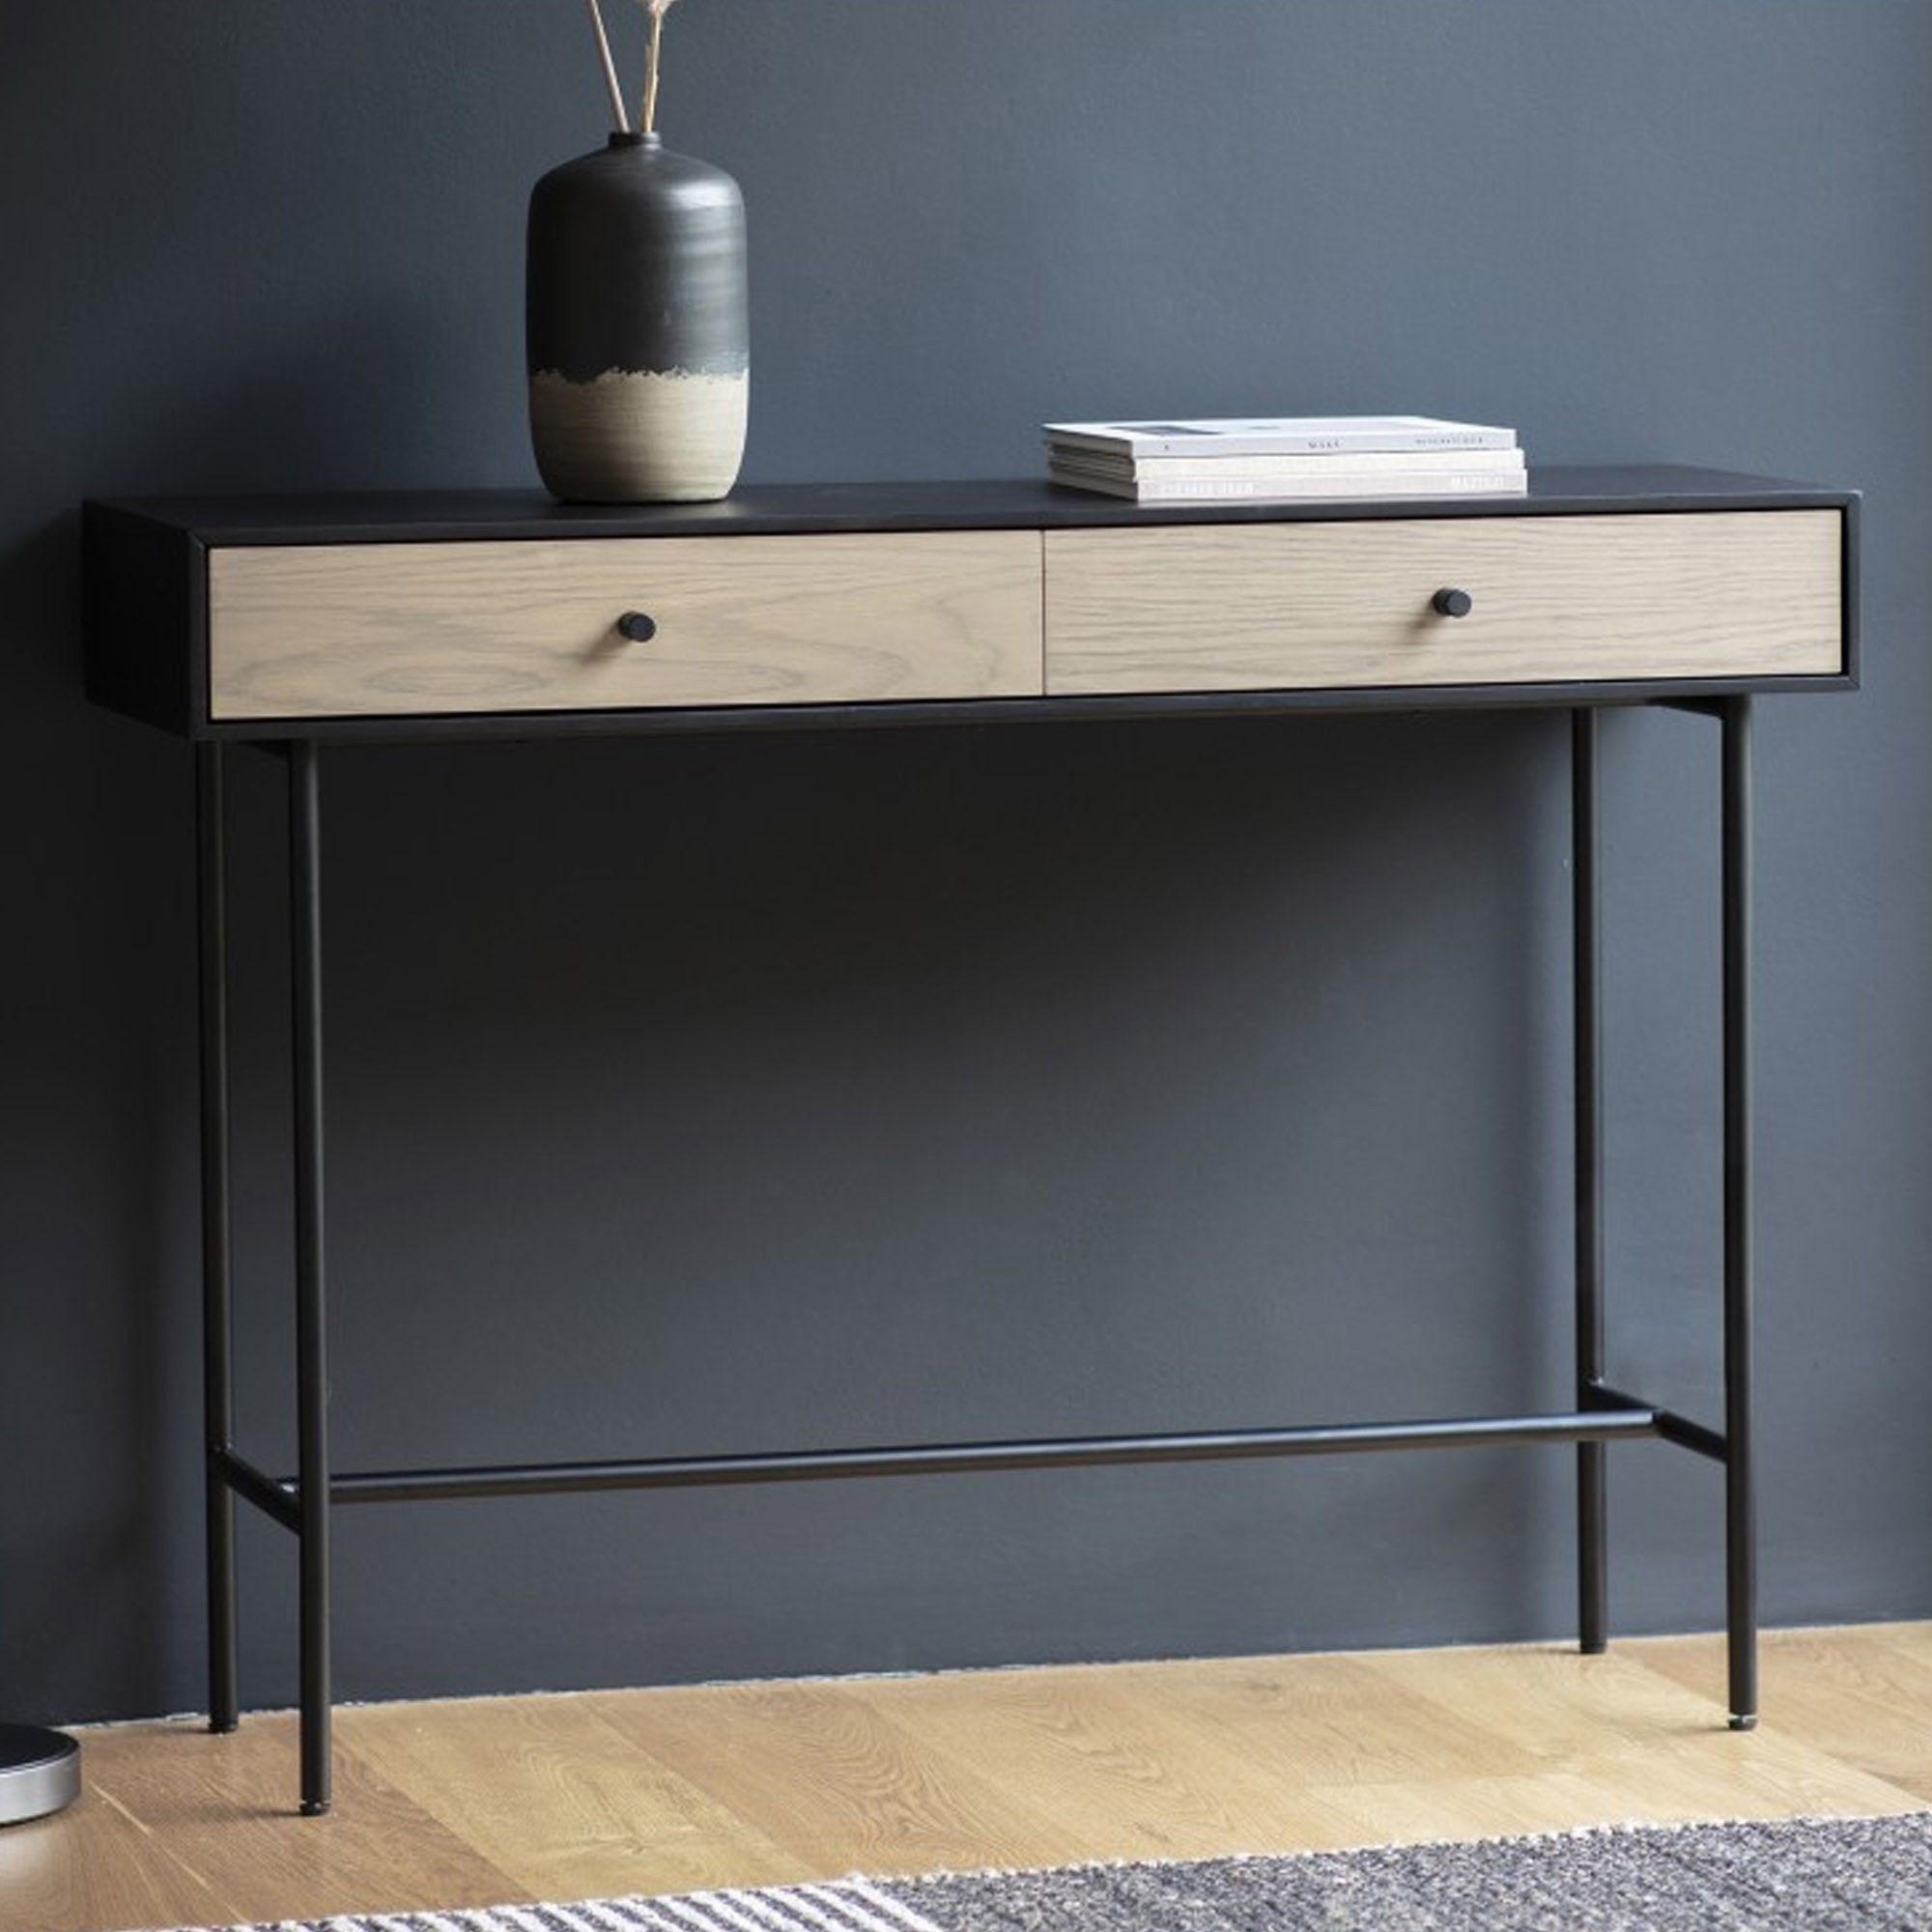 Carbury 2 Drawer Console Table Modern Console Table Industrial Console Table